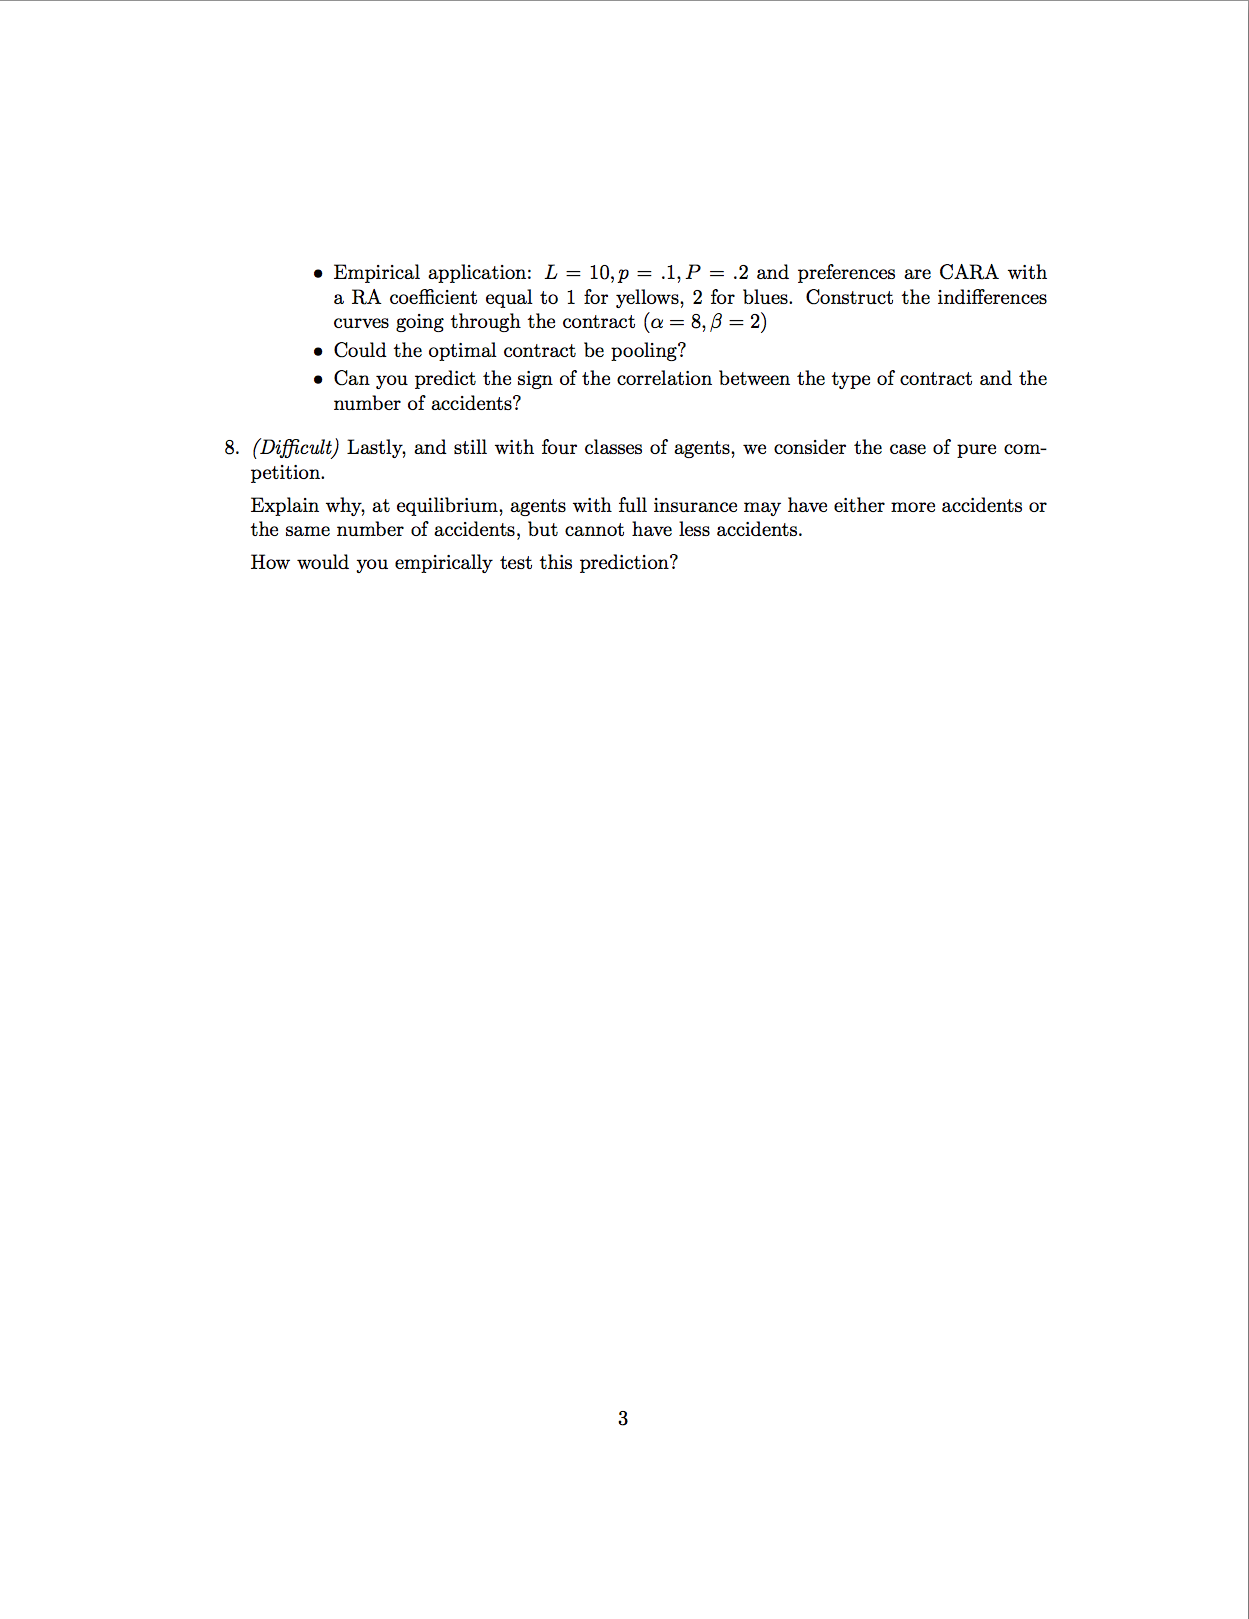 business economics problemset Businessunsweduau unsw business school school of economics   this sample problem set will not be graded, but it will illustrate the.